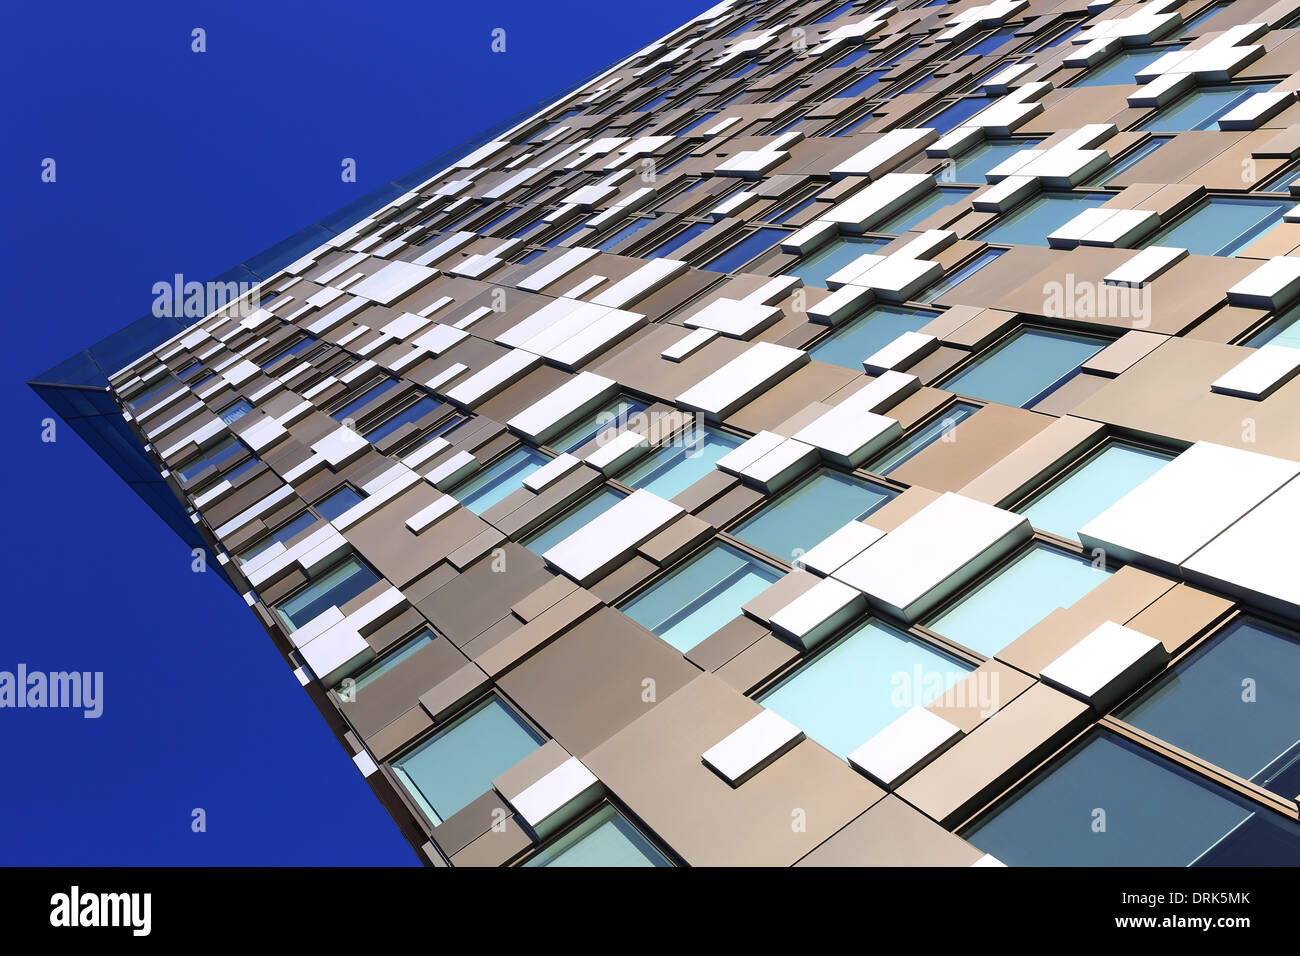 The Cube, Birmingham, England,The cube Birmingham home of Hotel Indigo and Marco Pierre White, designed by Ken Shuttleworth - Stock Image